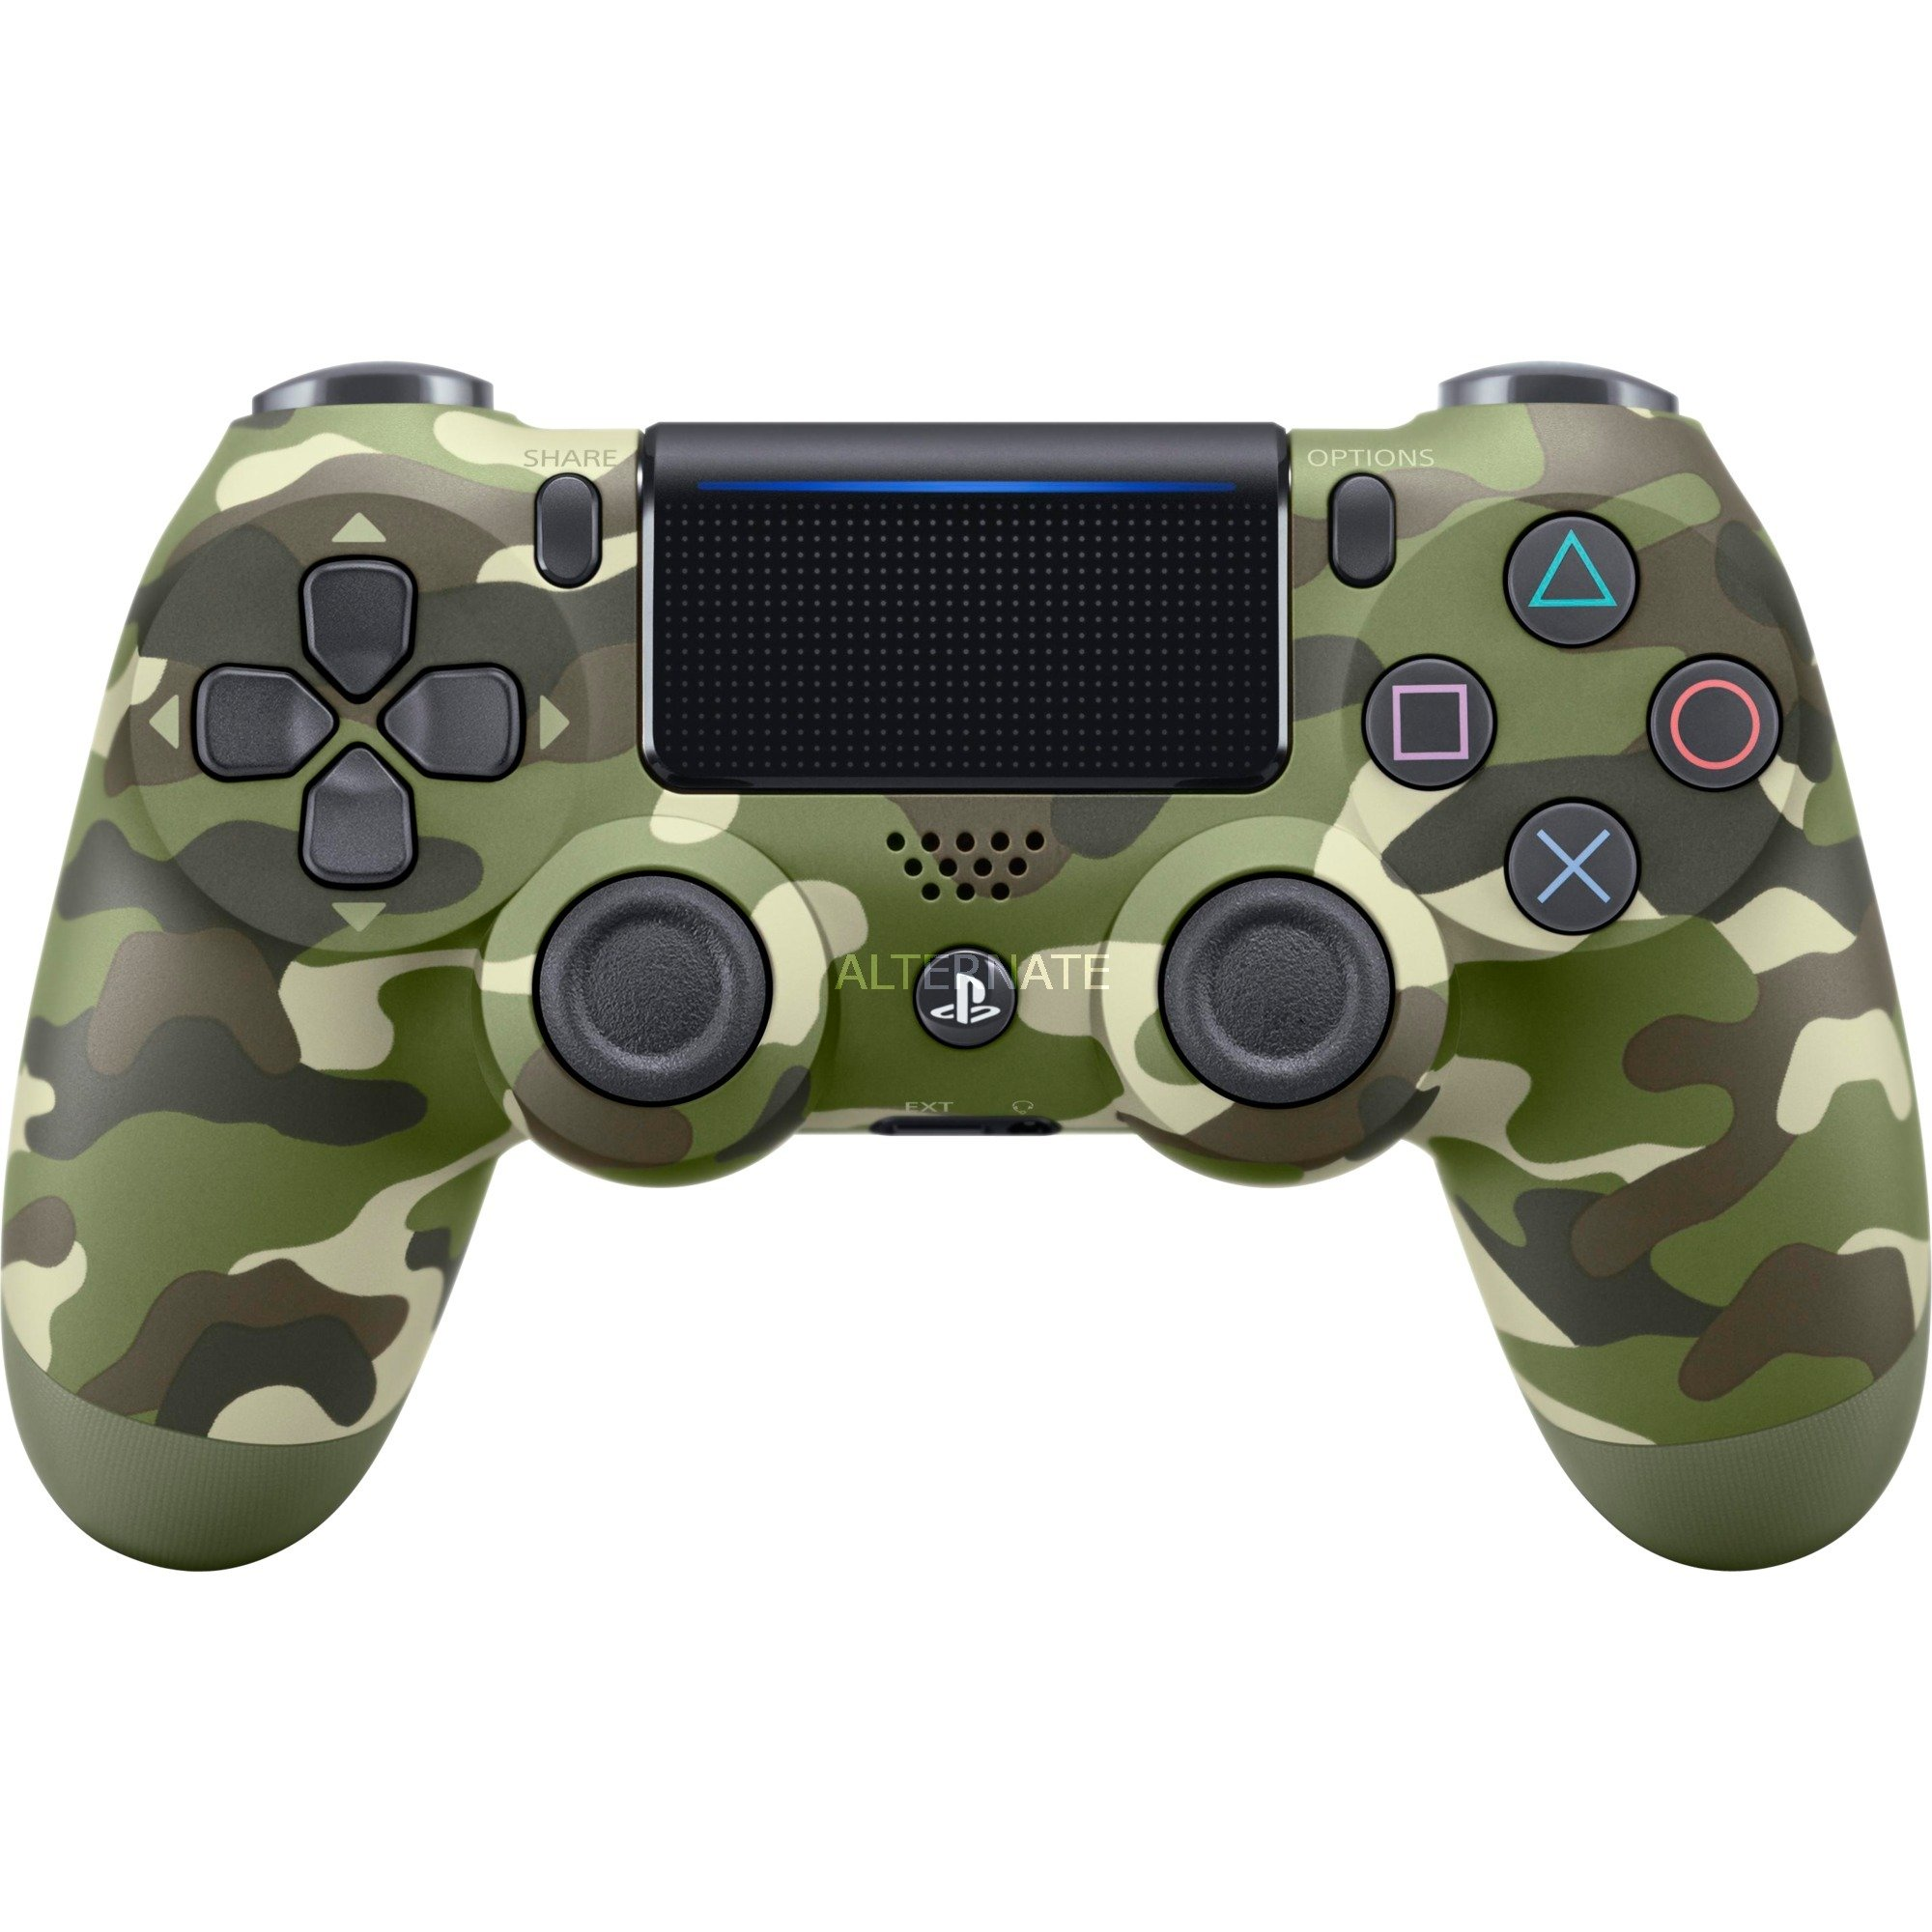 DualShock 4 Gamepad PlayStation 4 Analógico/Digital Bluetooth Camuflaje, Verde